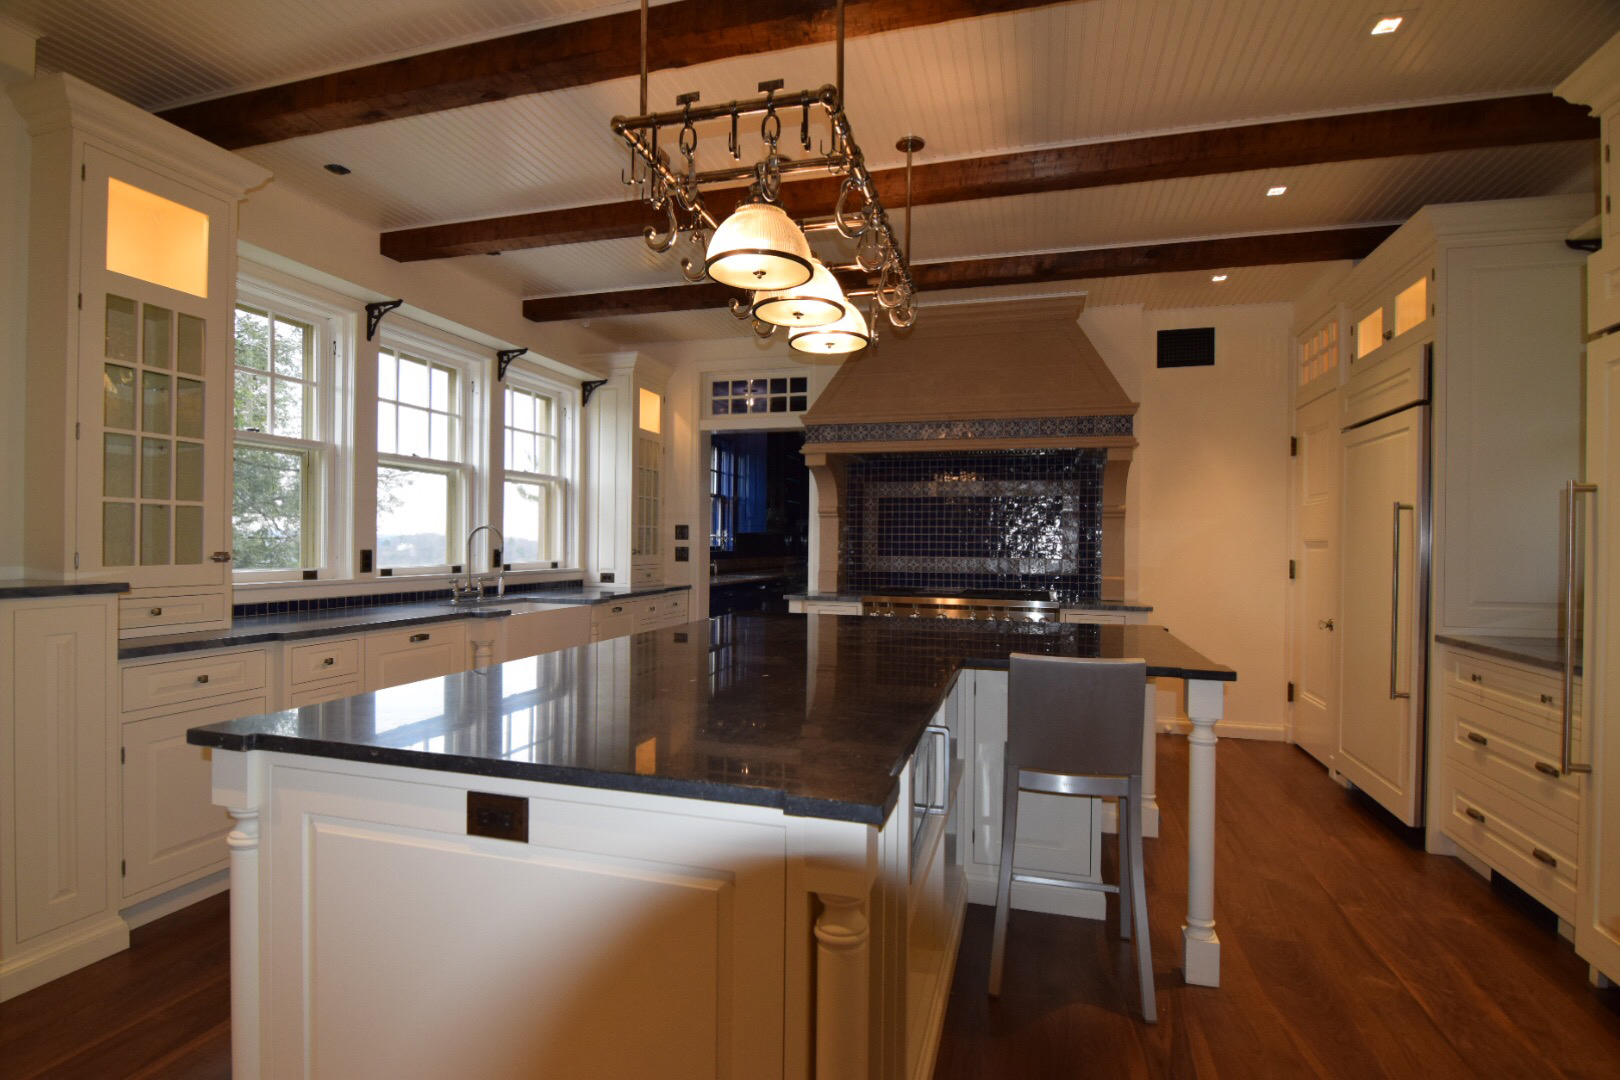 custom-kitchen-with-white-lacquered-hard-maple-cabinetry-inset-doors-and-raised-panels-and-granite-countertop.jpg